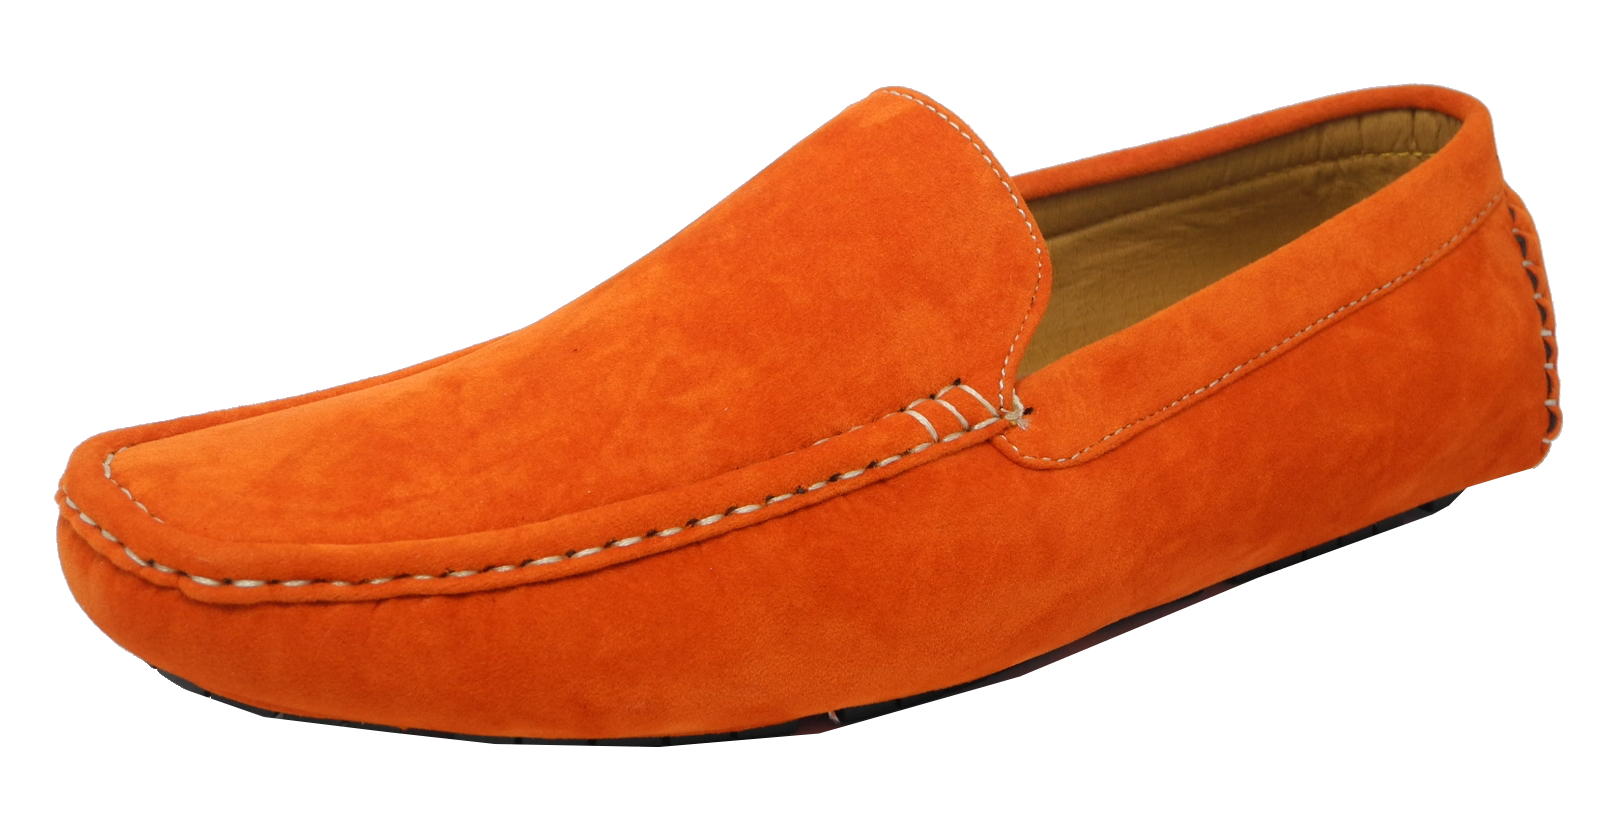 Shop online for Men's Slip-On Loafers, Driving Shoes & Moccasins at nichapie.ml Find boat shoes & mules. Free Shipping. Free Returns. All the time.